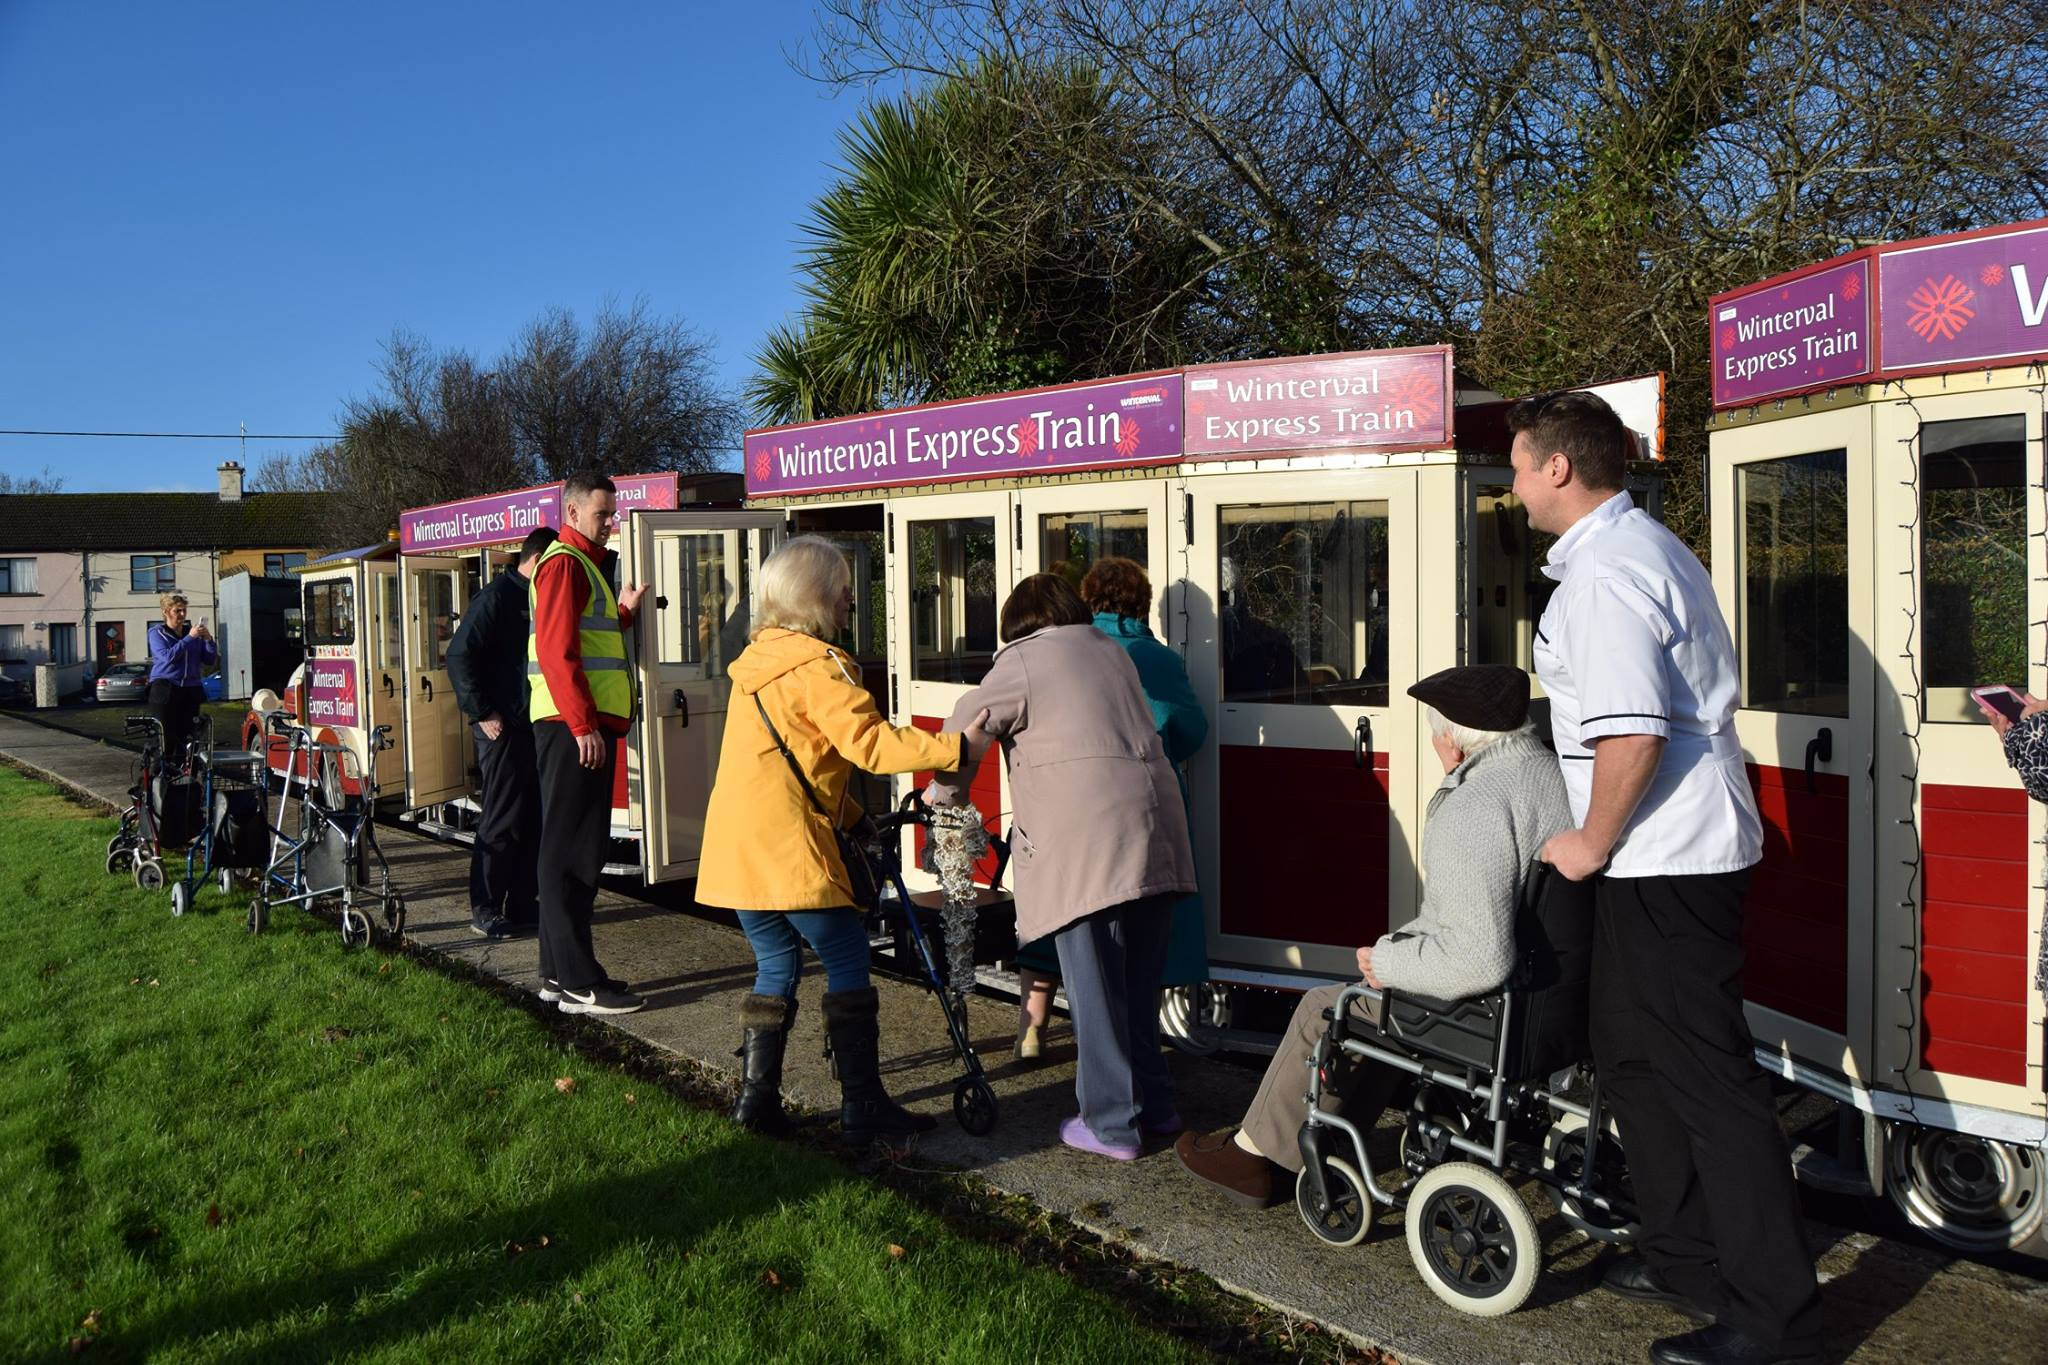 Waterford nursing home residents get Winterval Express tour